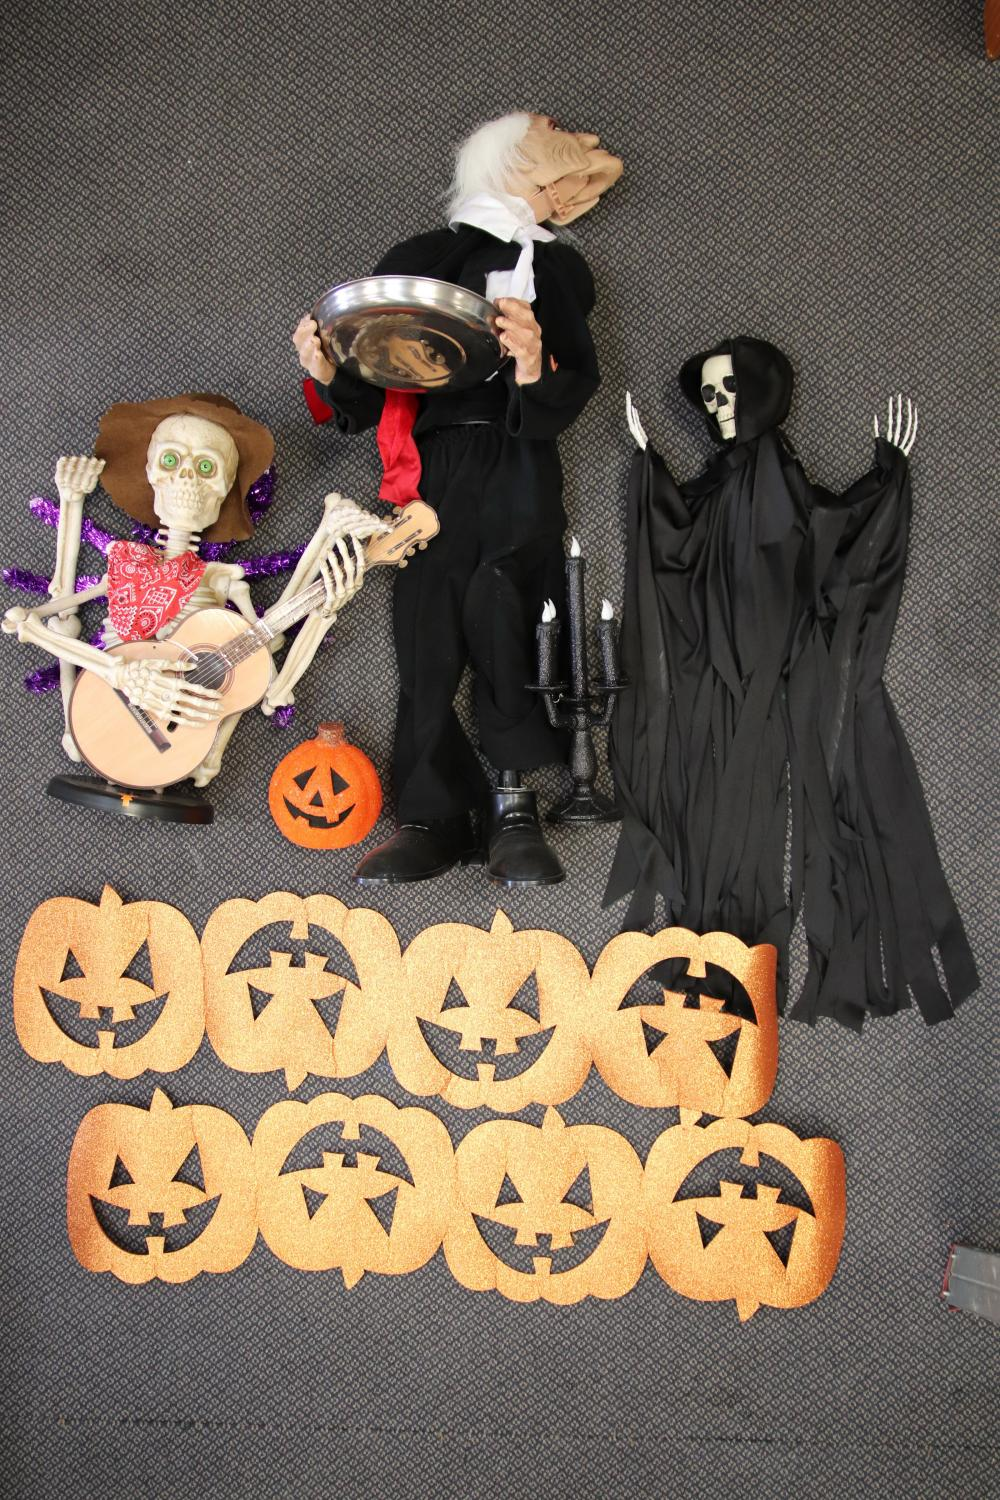 2 BOXES OF HALLOWEEN DECORATIONS INCL SCARY BUTLER & SKELETONS